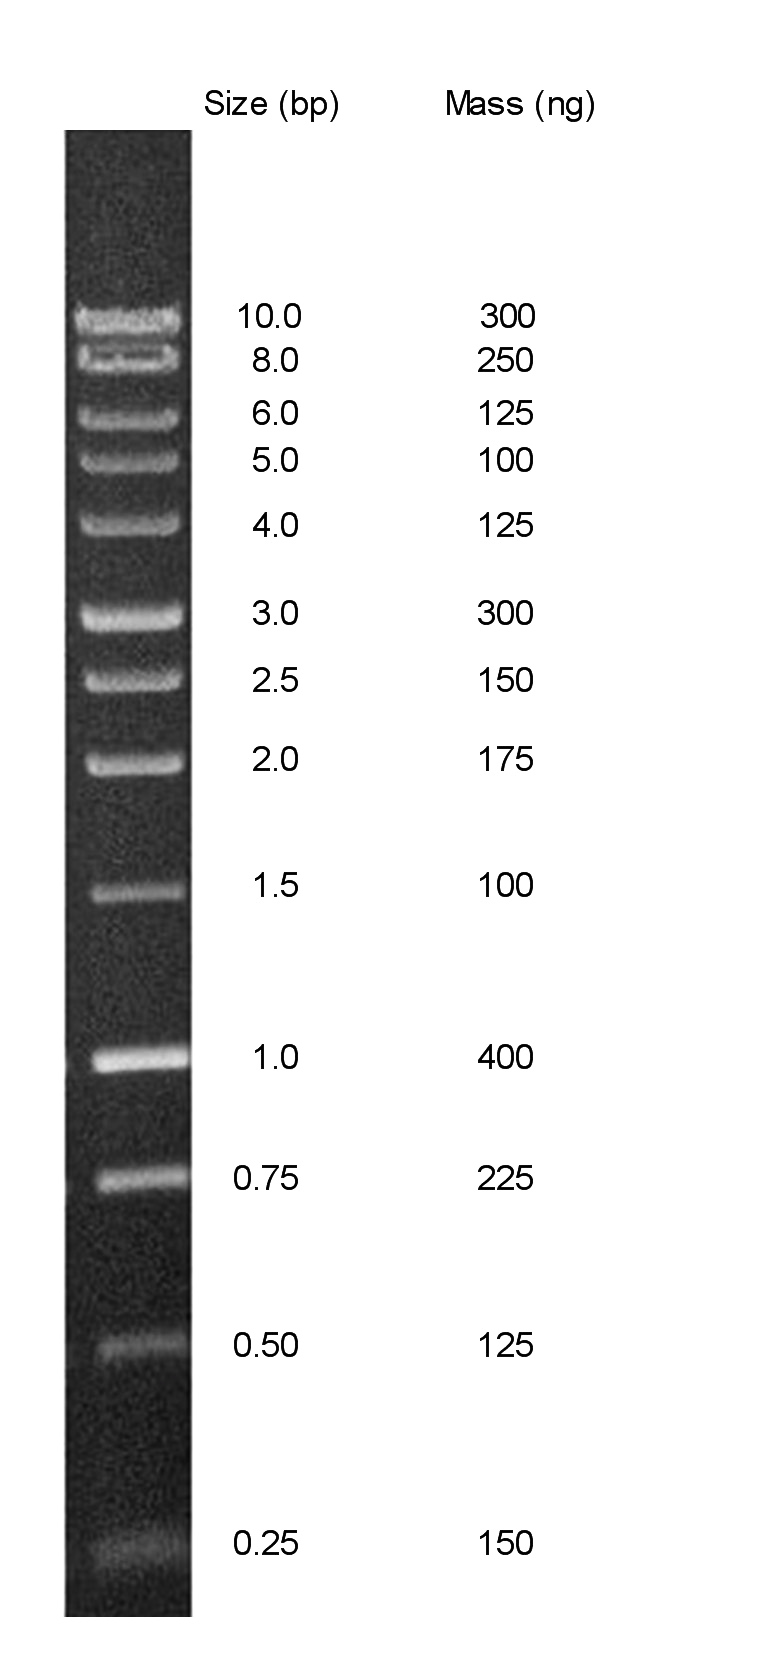 Chimerx Perfect Plus 1 Kb DNA Ladder